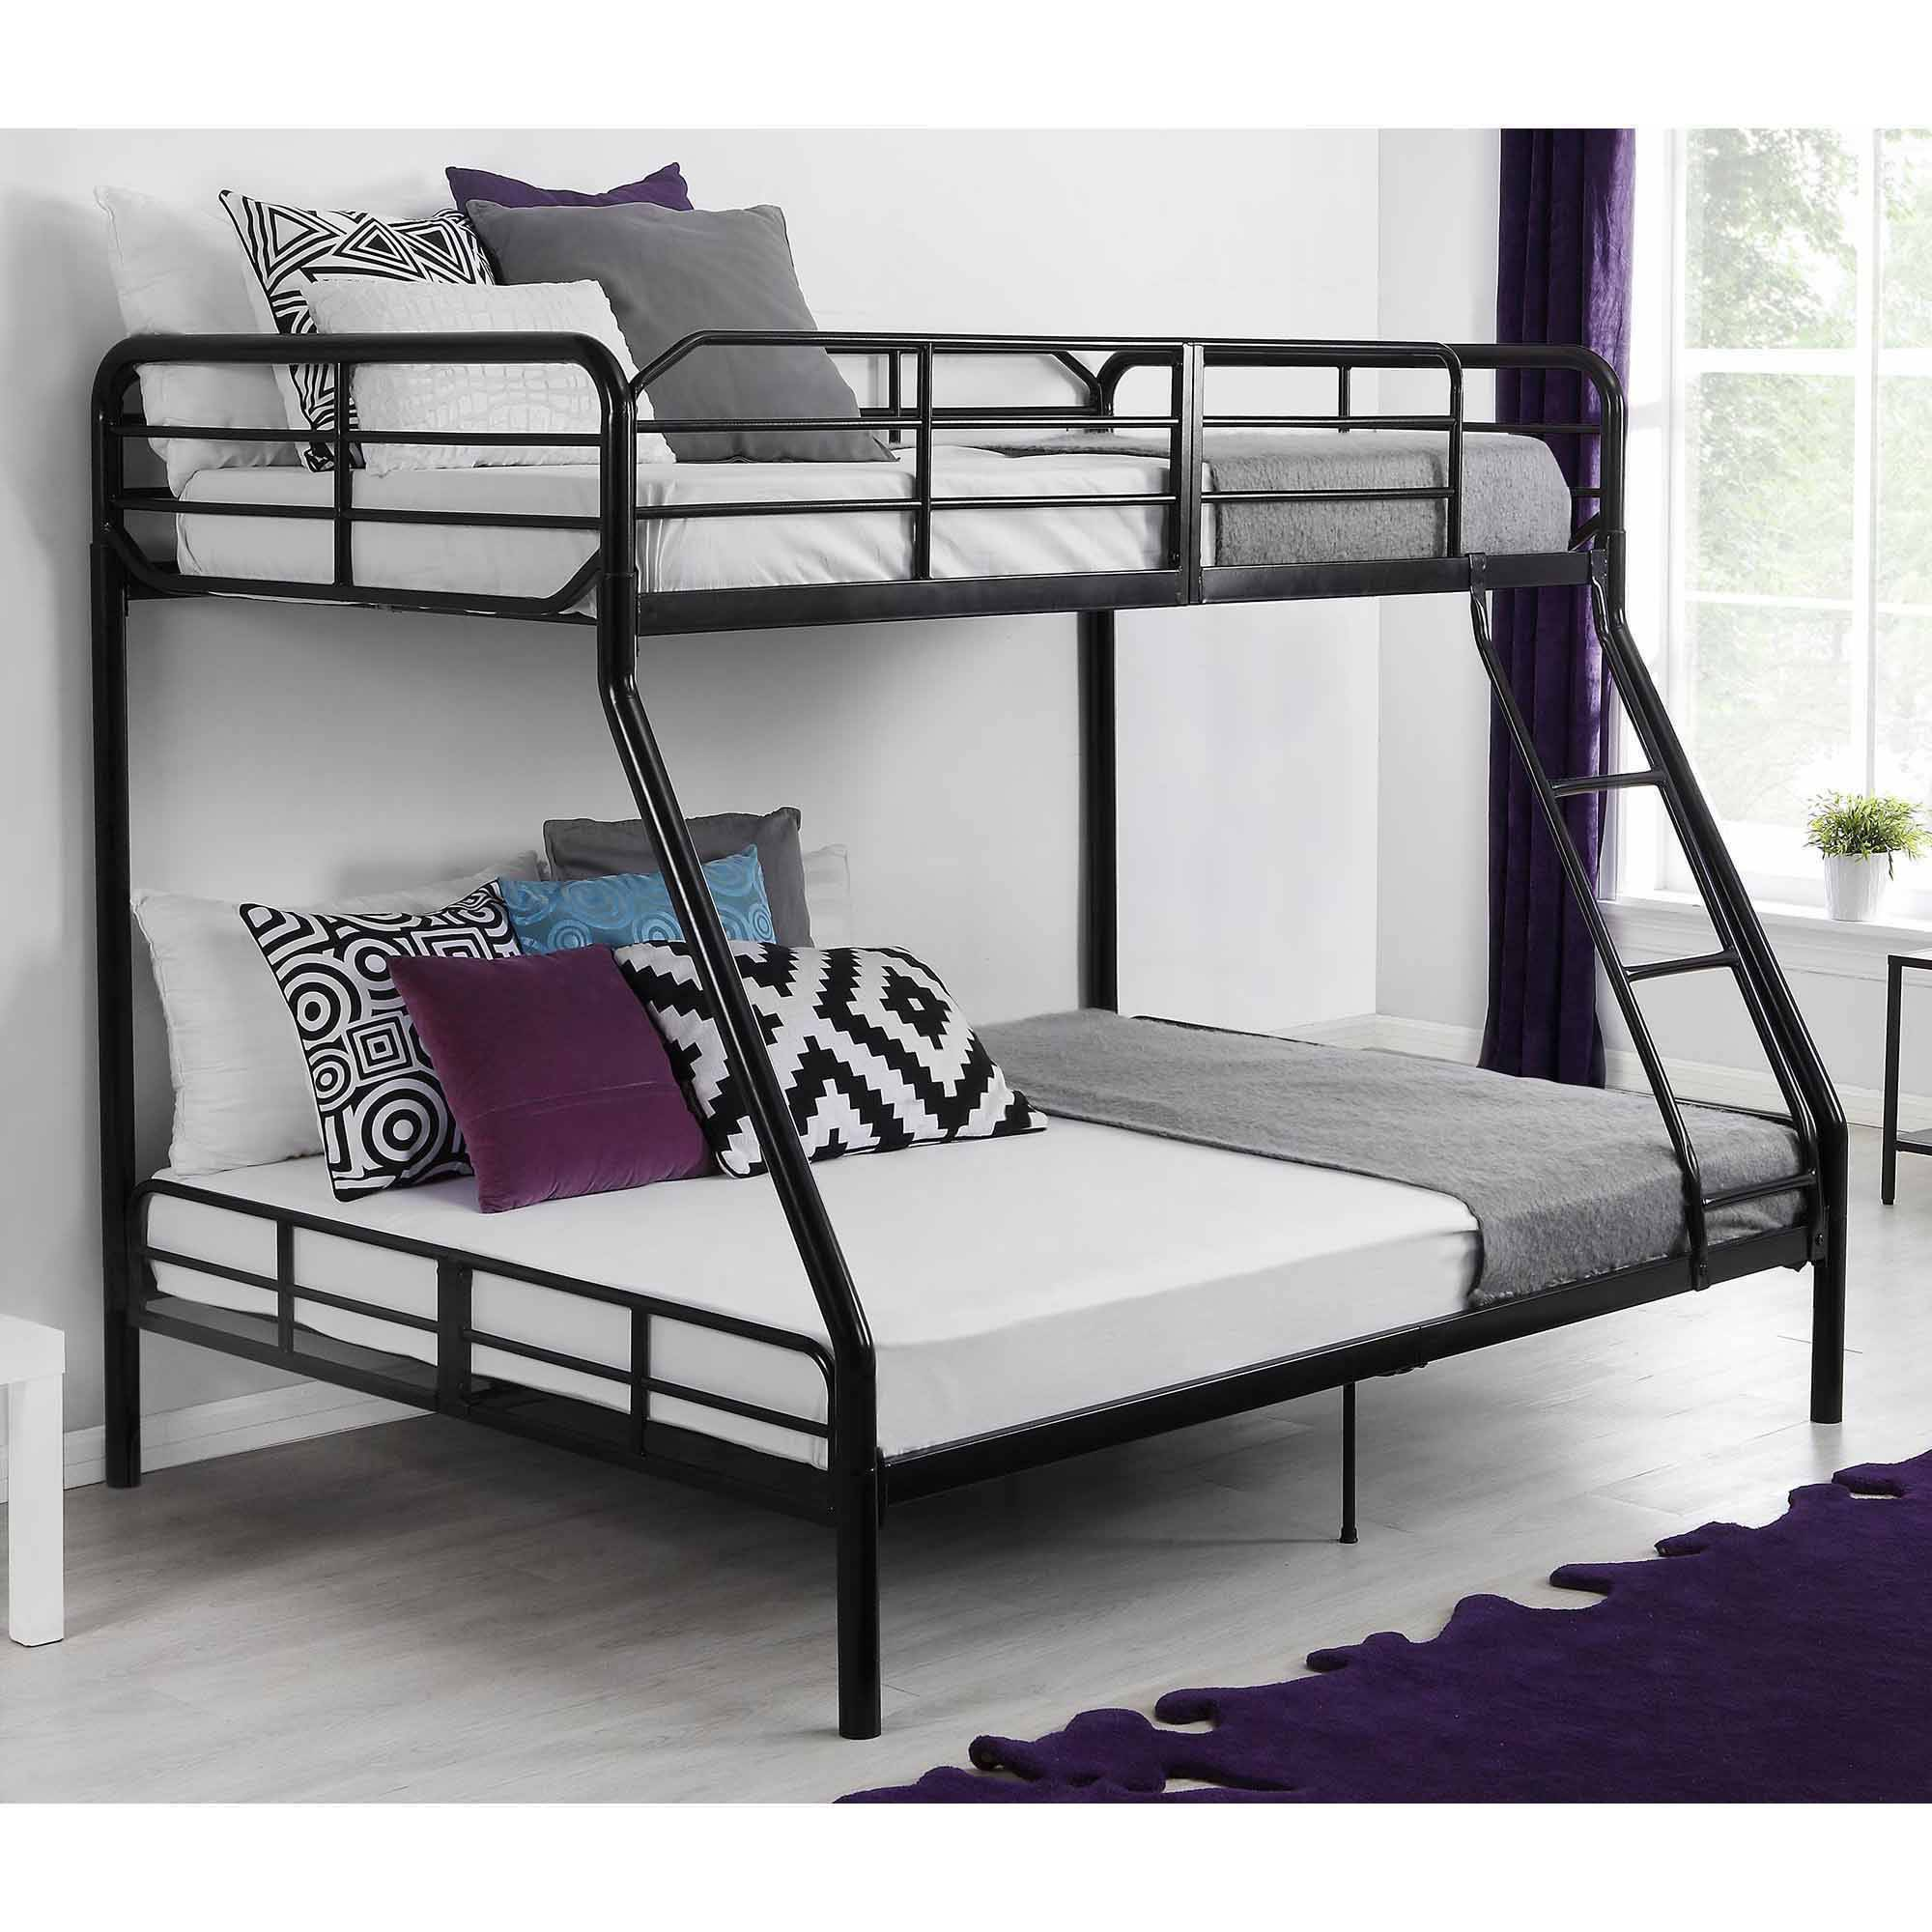 Stunning Kidsu0027 Rooms - Walmart.com boys bedroom furniture